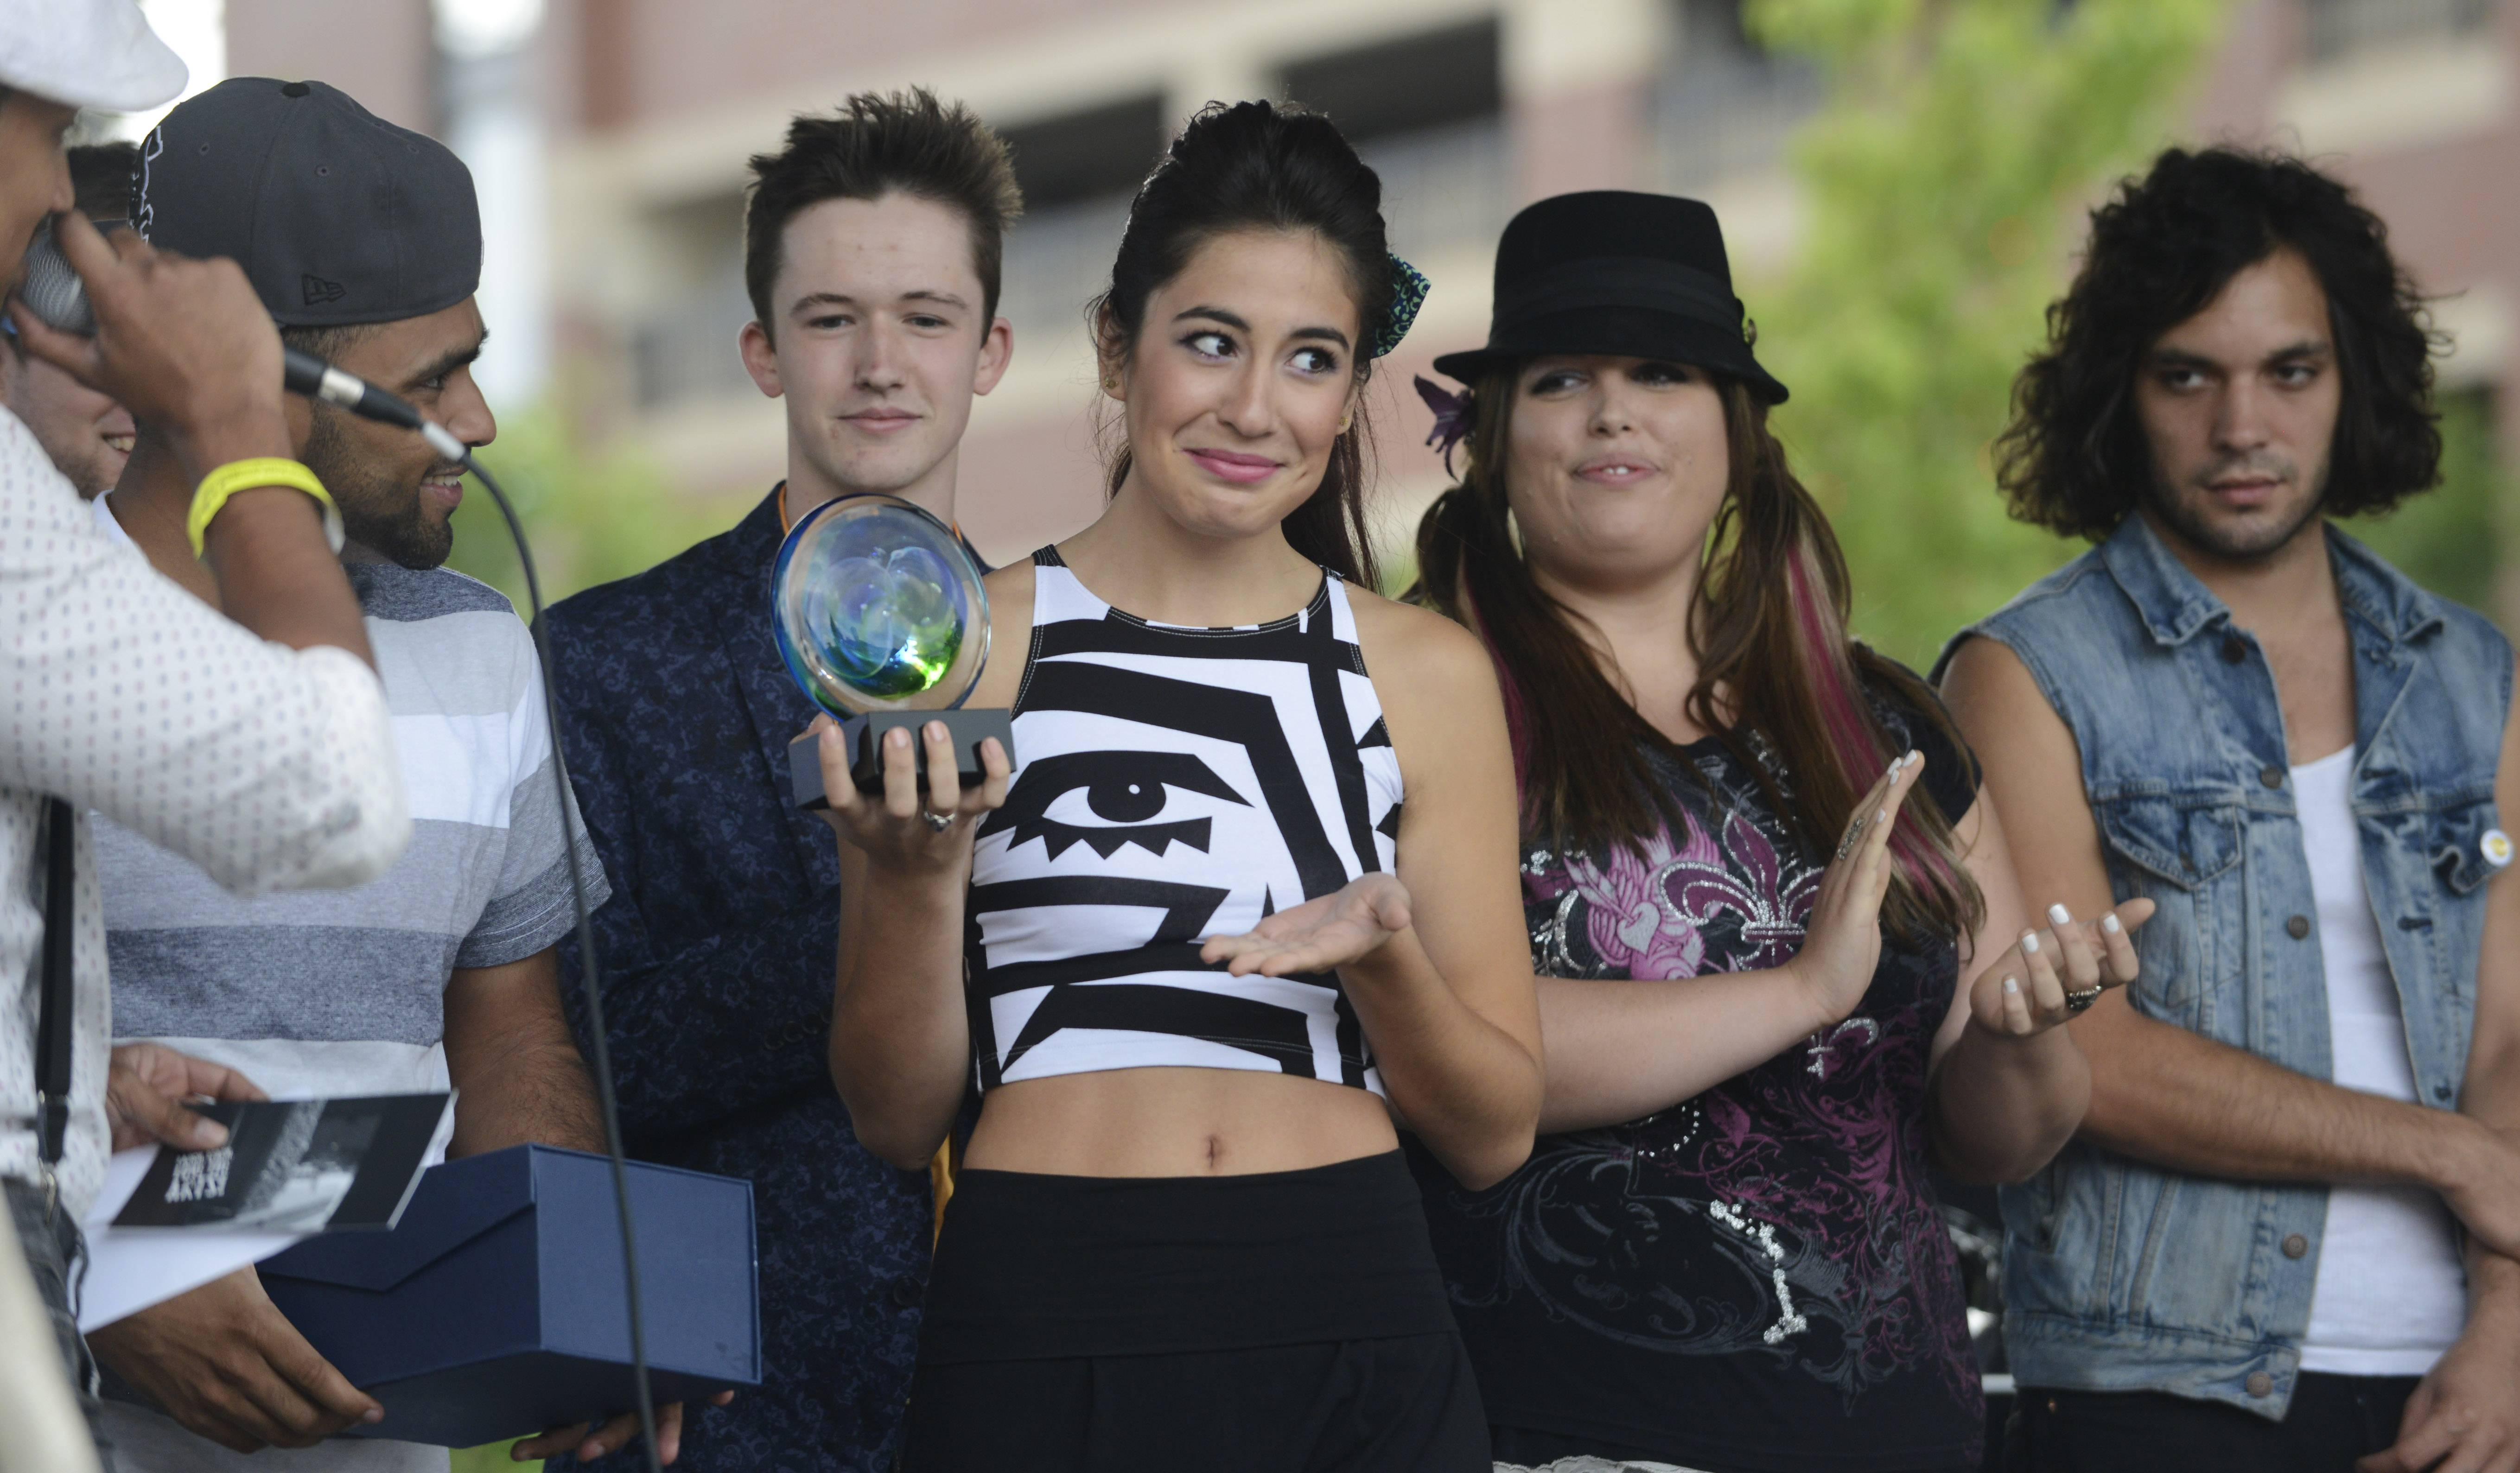 Gabriela Francesca holds her trophy after being announced the winner of the 2013 edition of Suburban Chicago's Got Talent at the Taste of Arlington Heights.